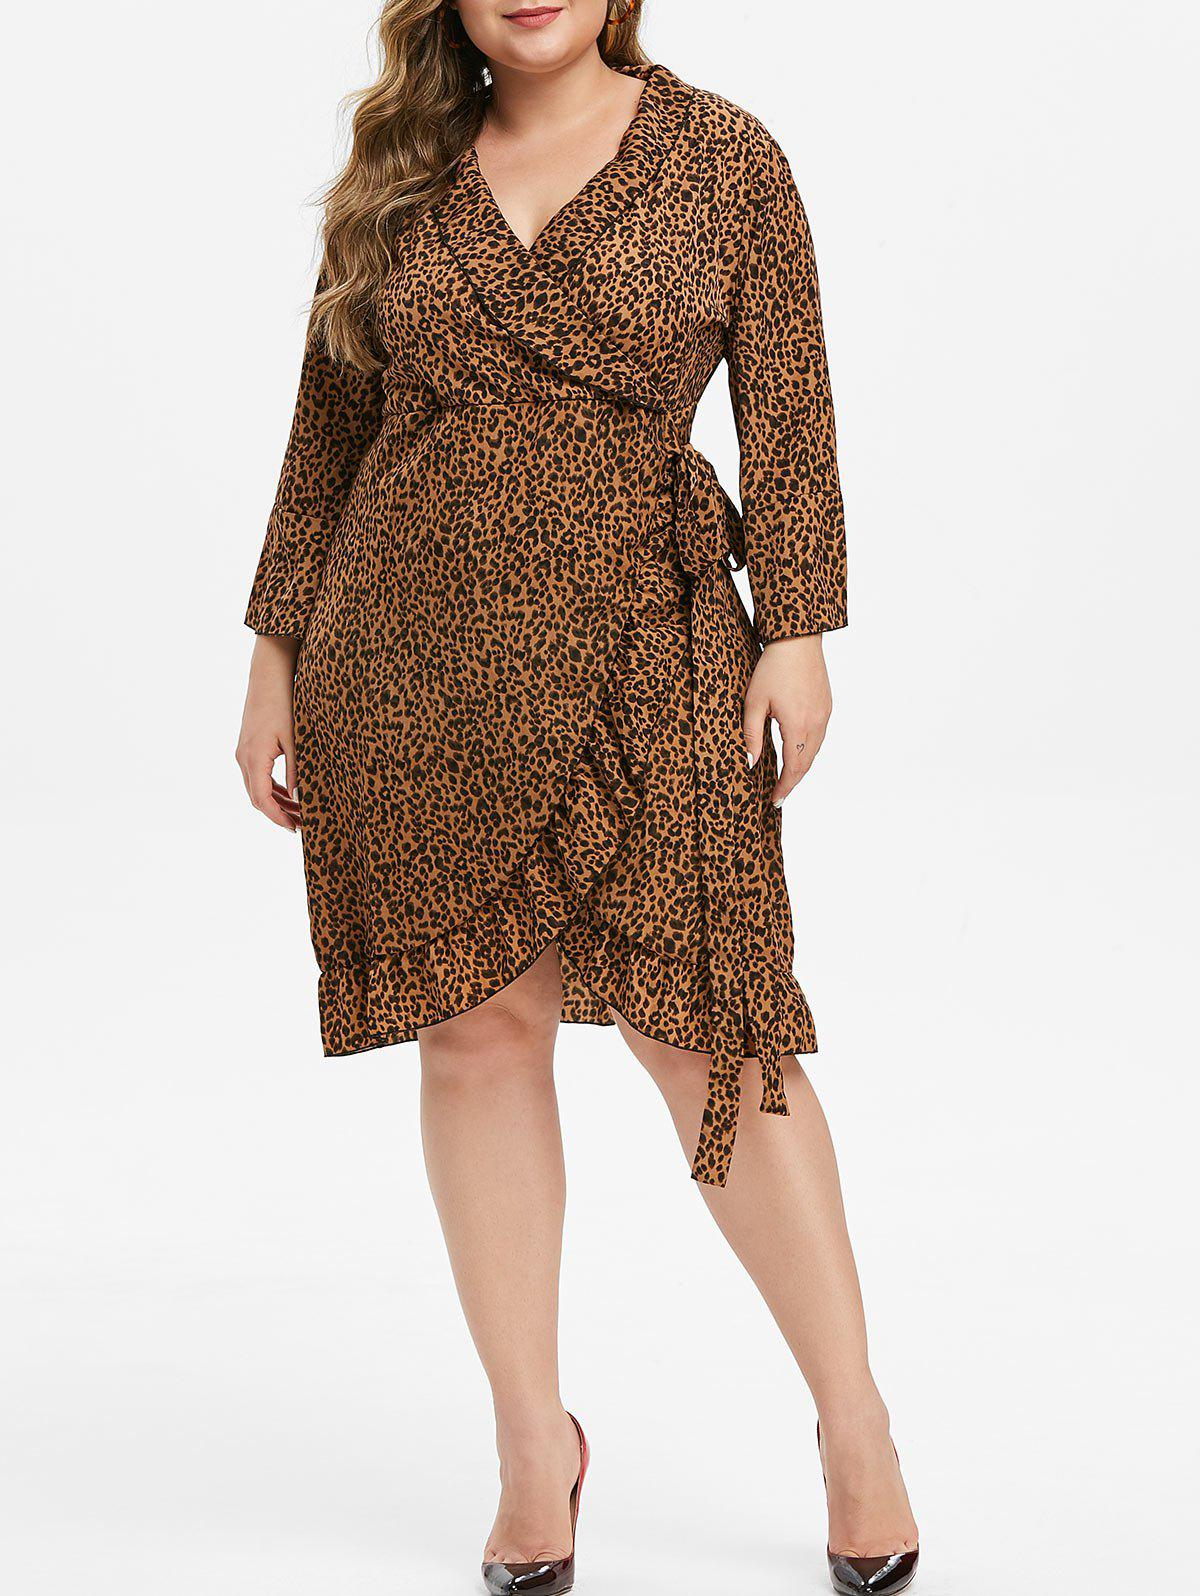 Leopard Ruffle Tie Plus Size Surplice Dress - BROWN 4X